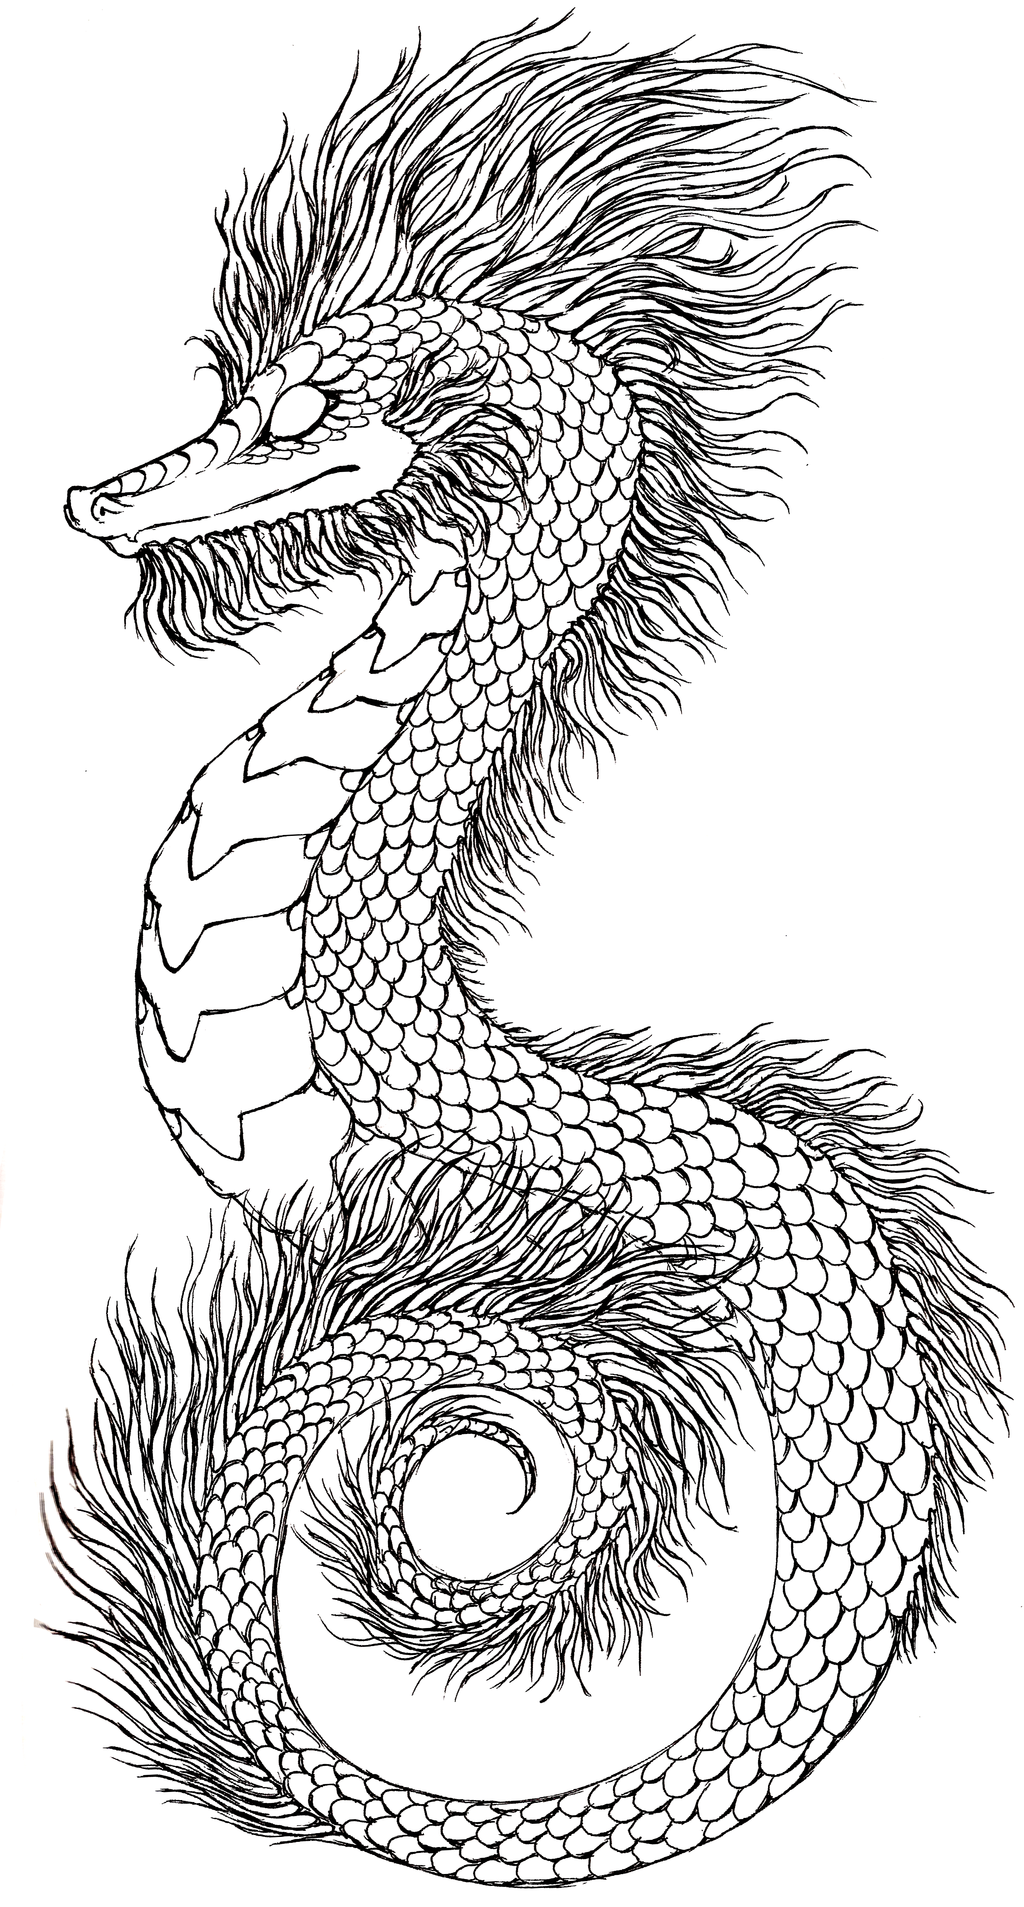 Drawn seahorse dragon Seahorse Drawing by Drawing Lucieniibi